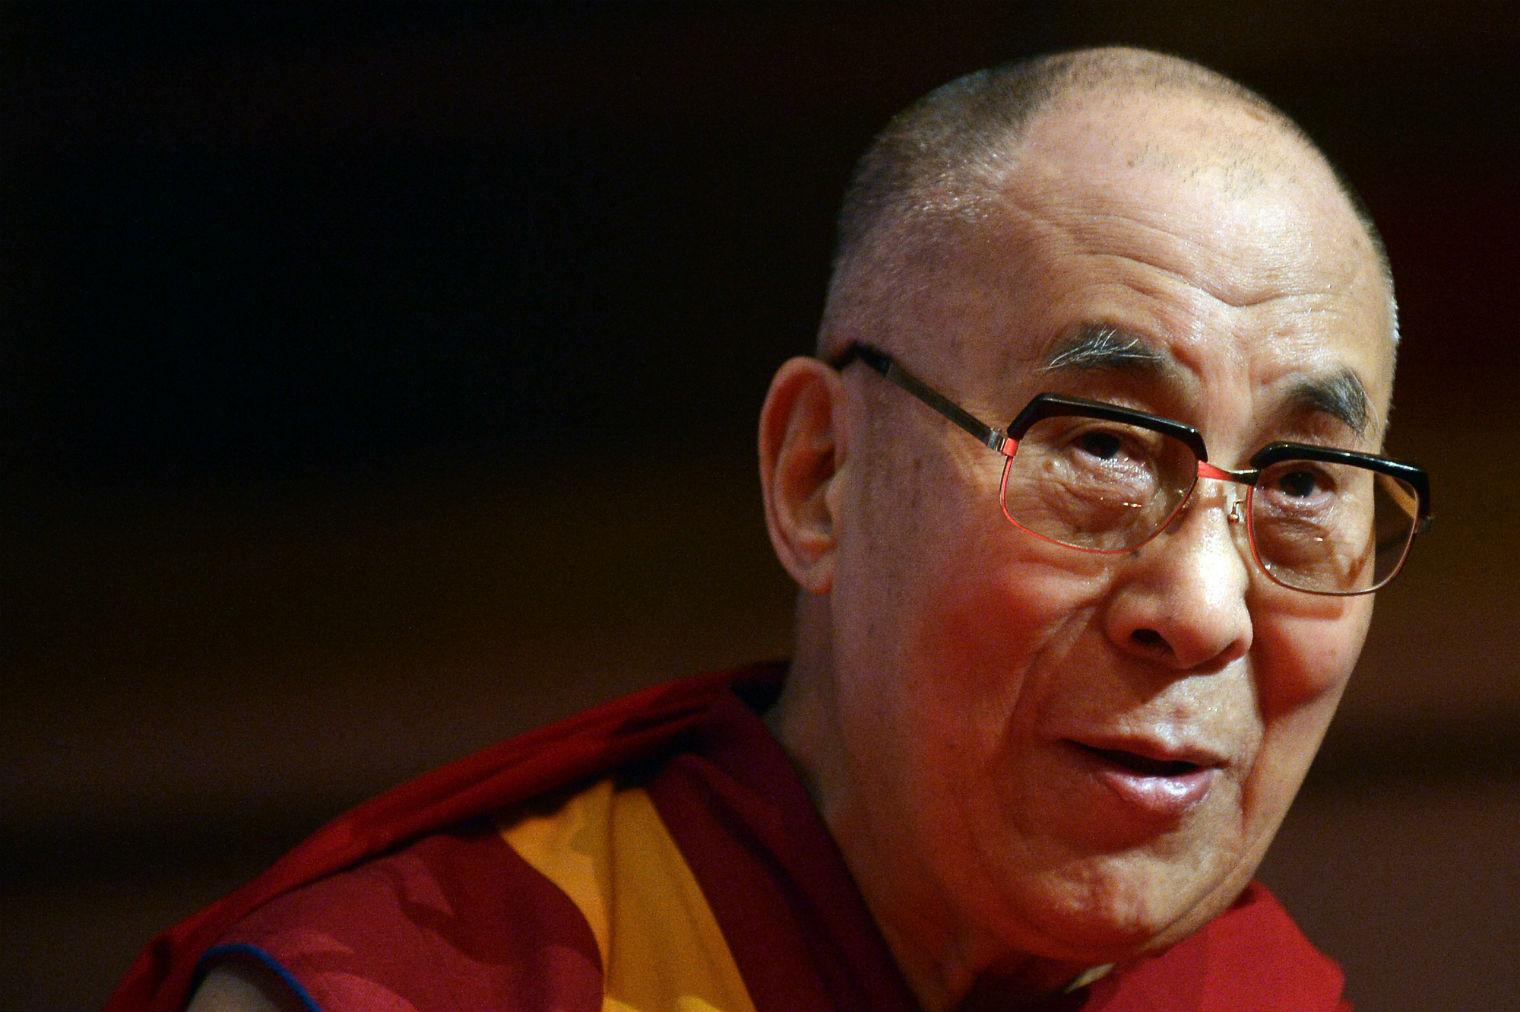 What the Dalai Lama said when he was asked whether we should pray for Paris